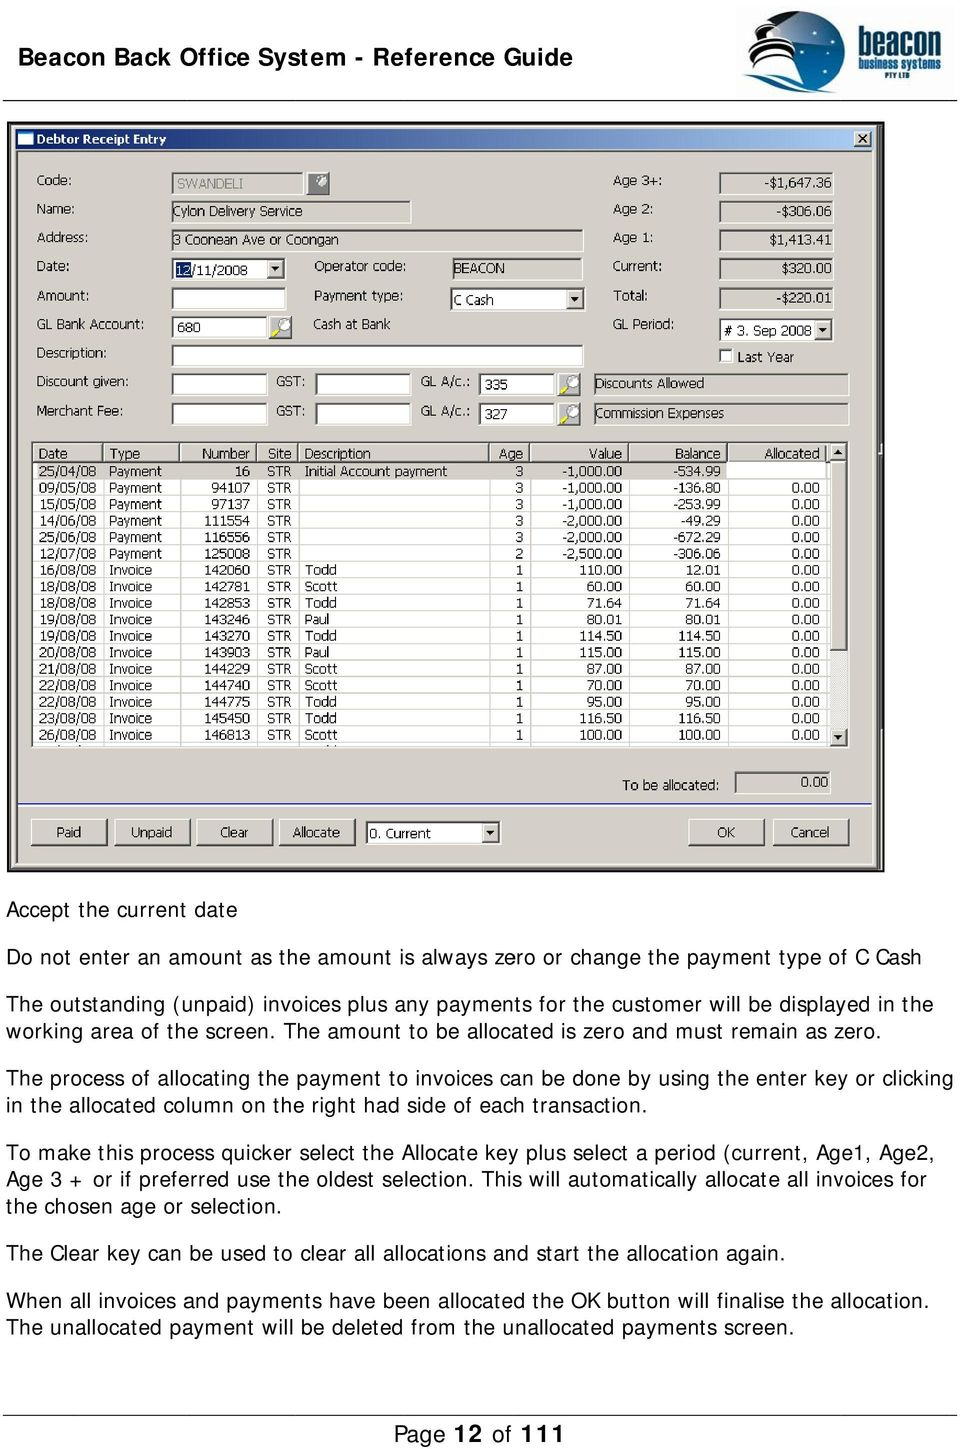 The process of allocating the payment to invoices can be done by using the enter key or clicking in the allocated column on the right had side of each transaction.